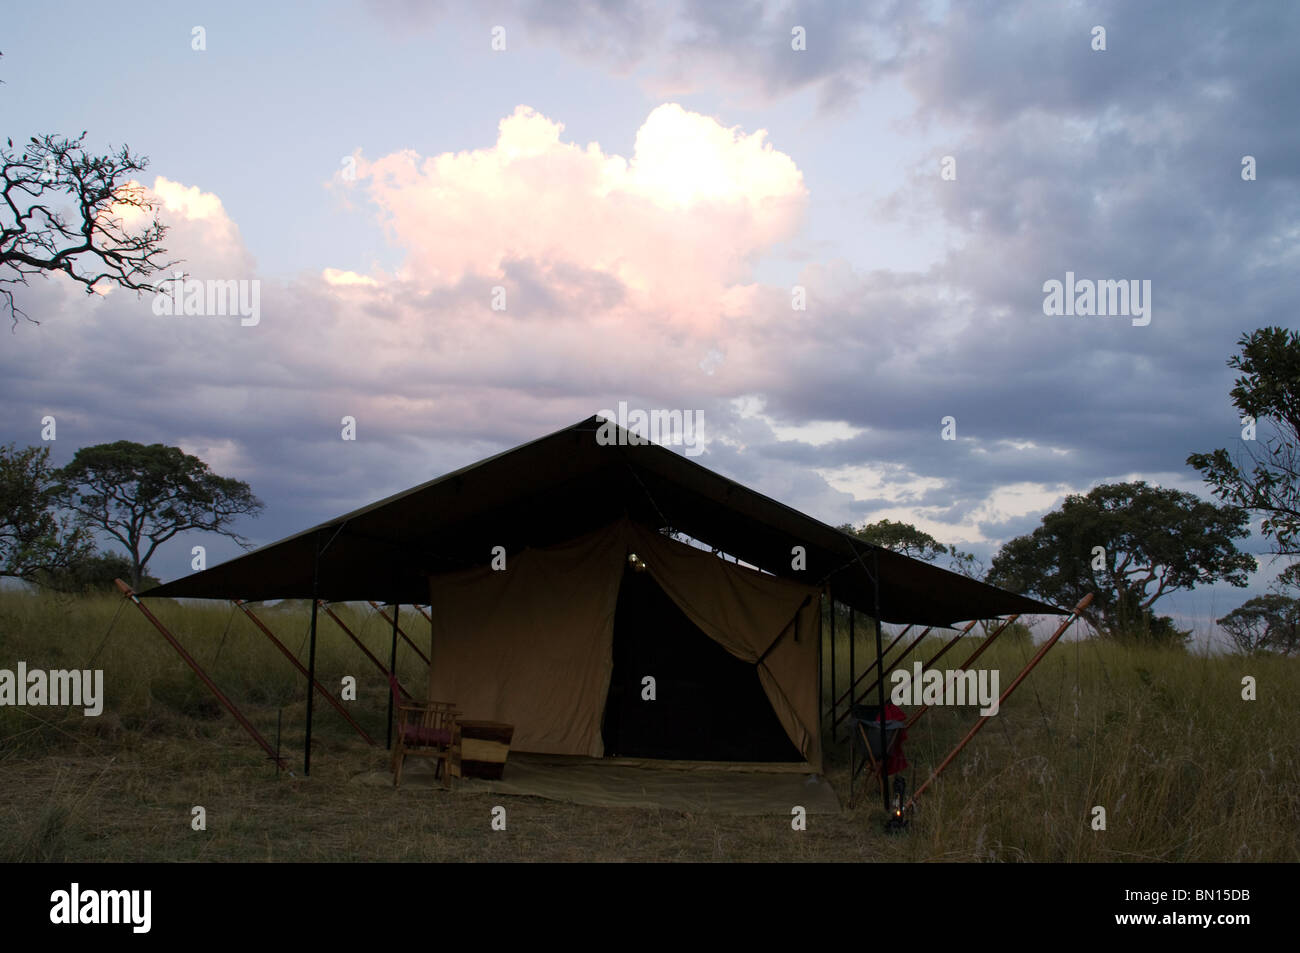 Safari tent serengetti - Stock Image